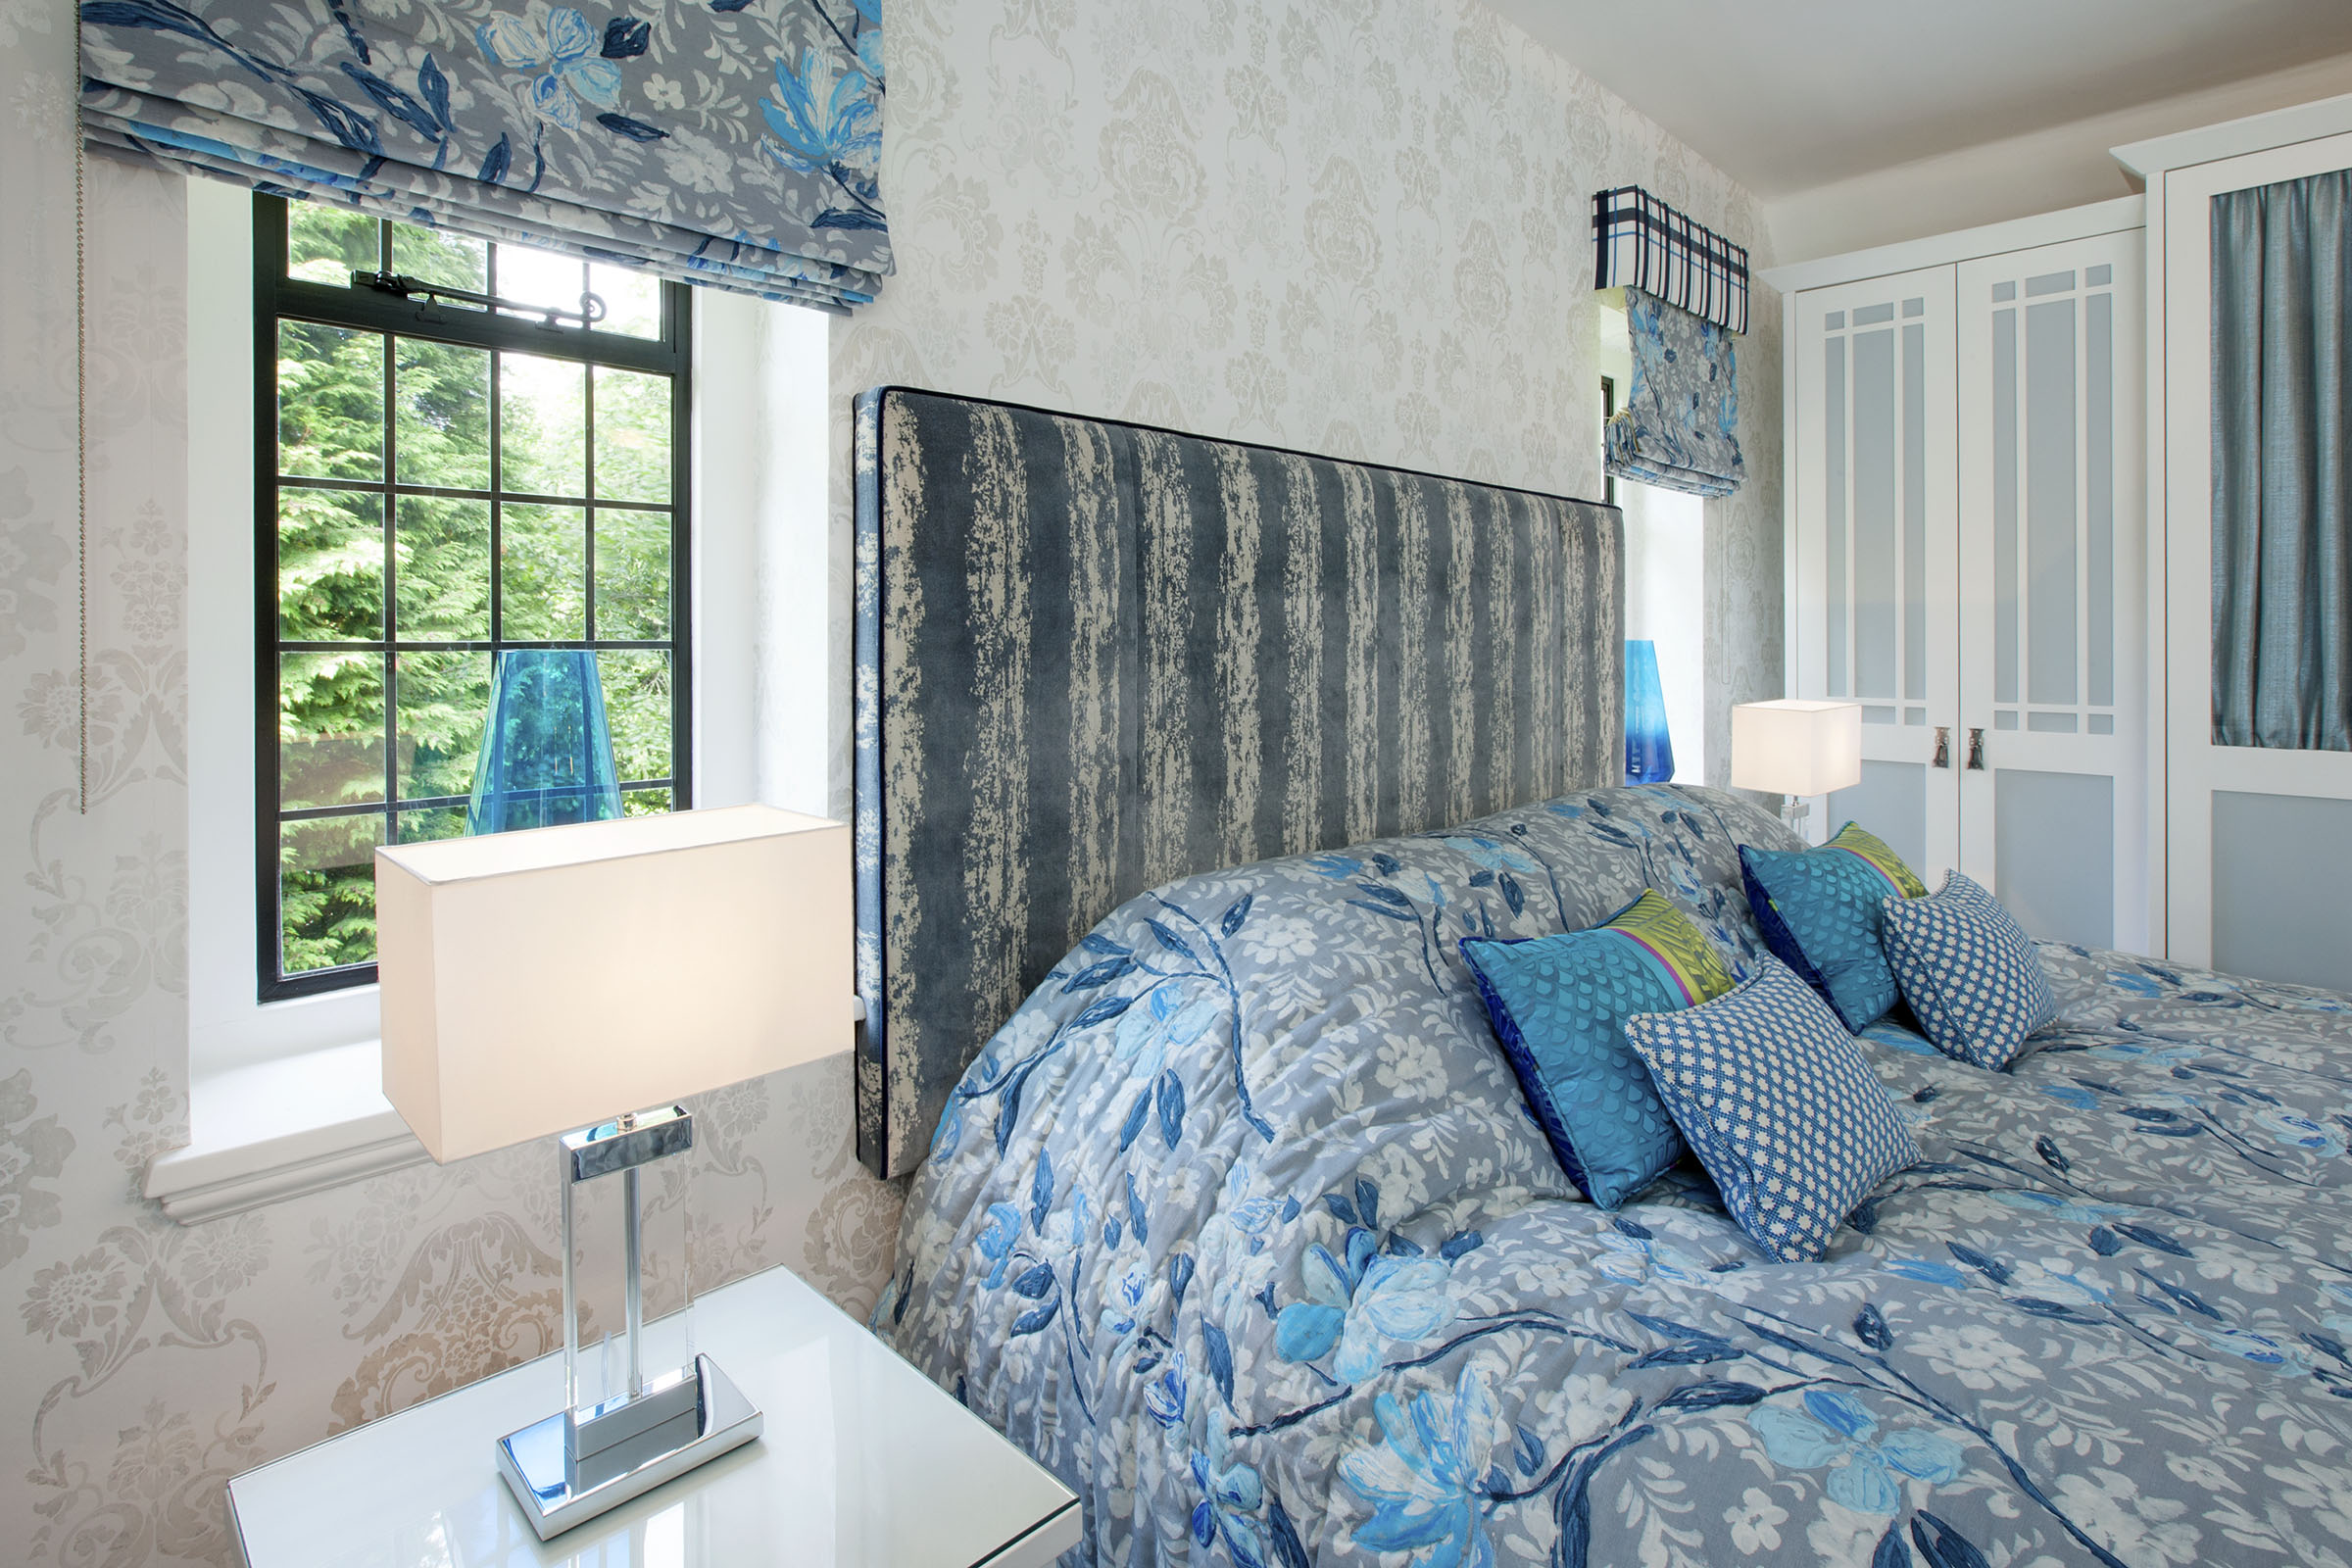 Bedroom with blue and grey co-ordinating duvet cover, headboard, cushions, blinds and curtains.